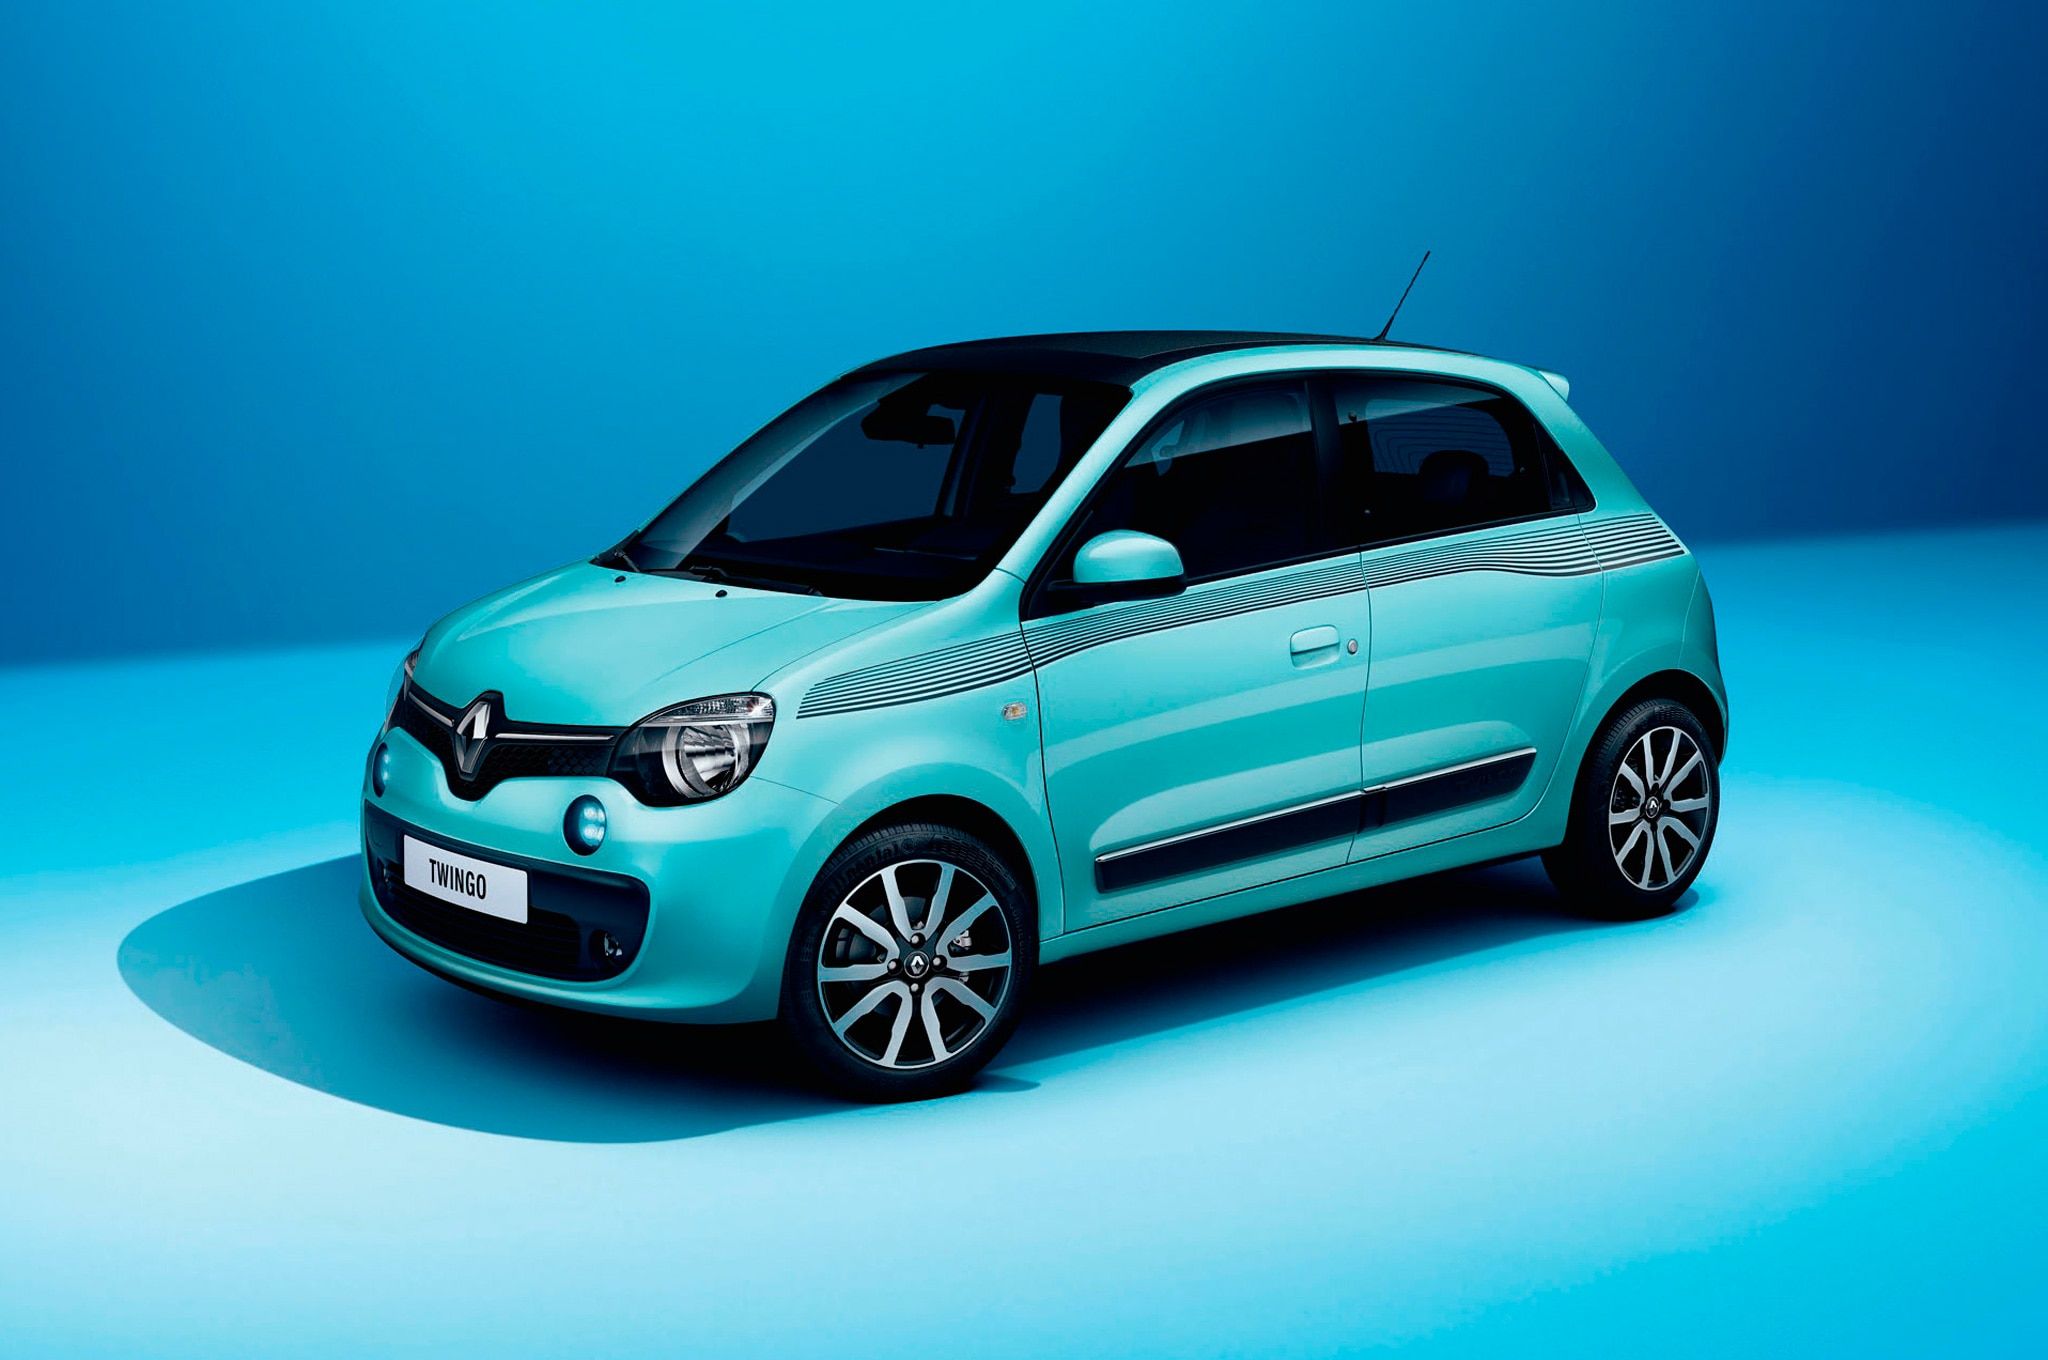 2015 Renault Twingo front three quarters view in teal new smart based renault twingo debuts in geneva automobile magazine renault twingo fuse box diagram at gsmportal.co